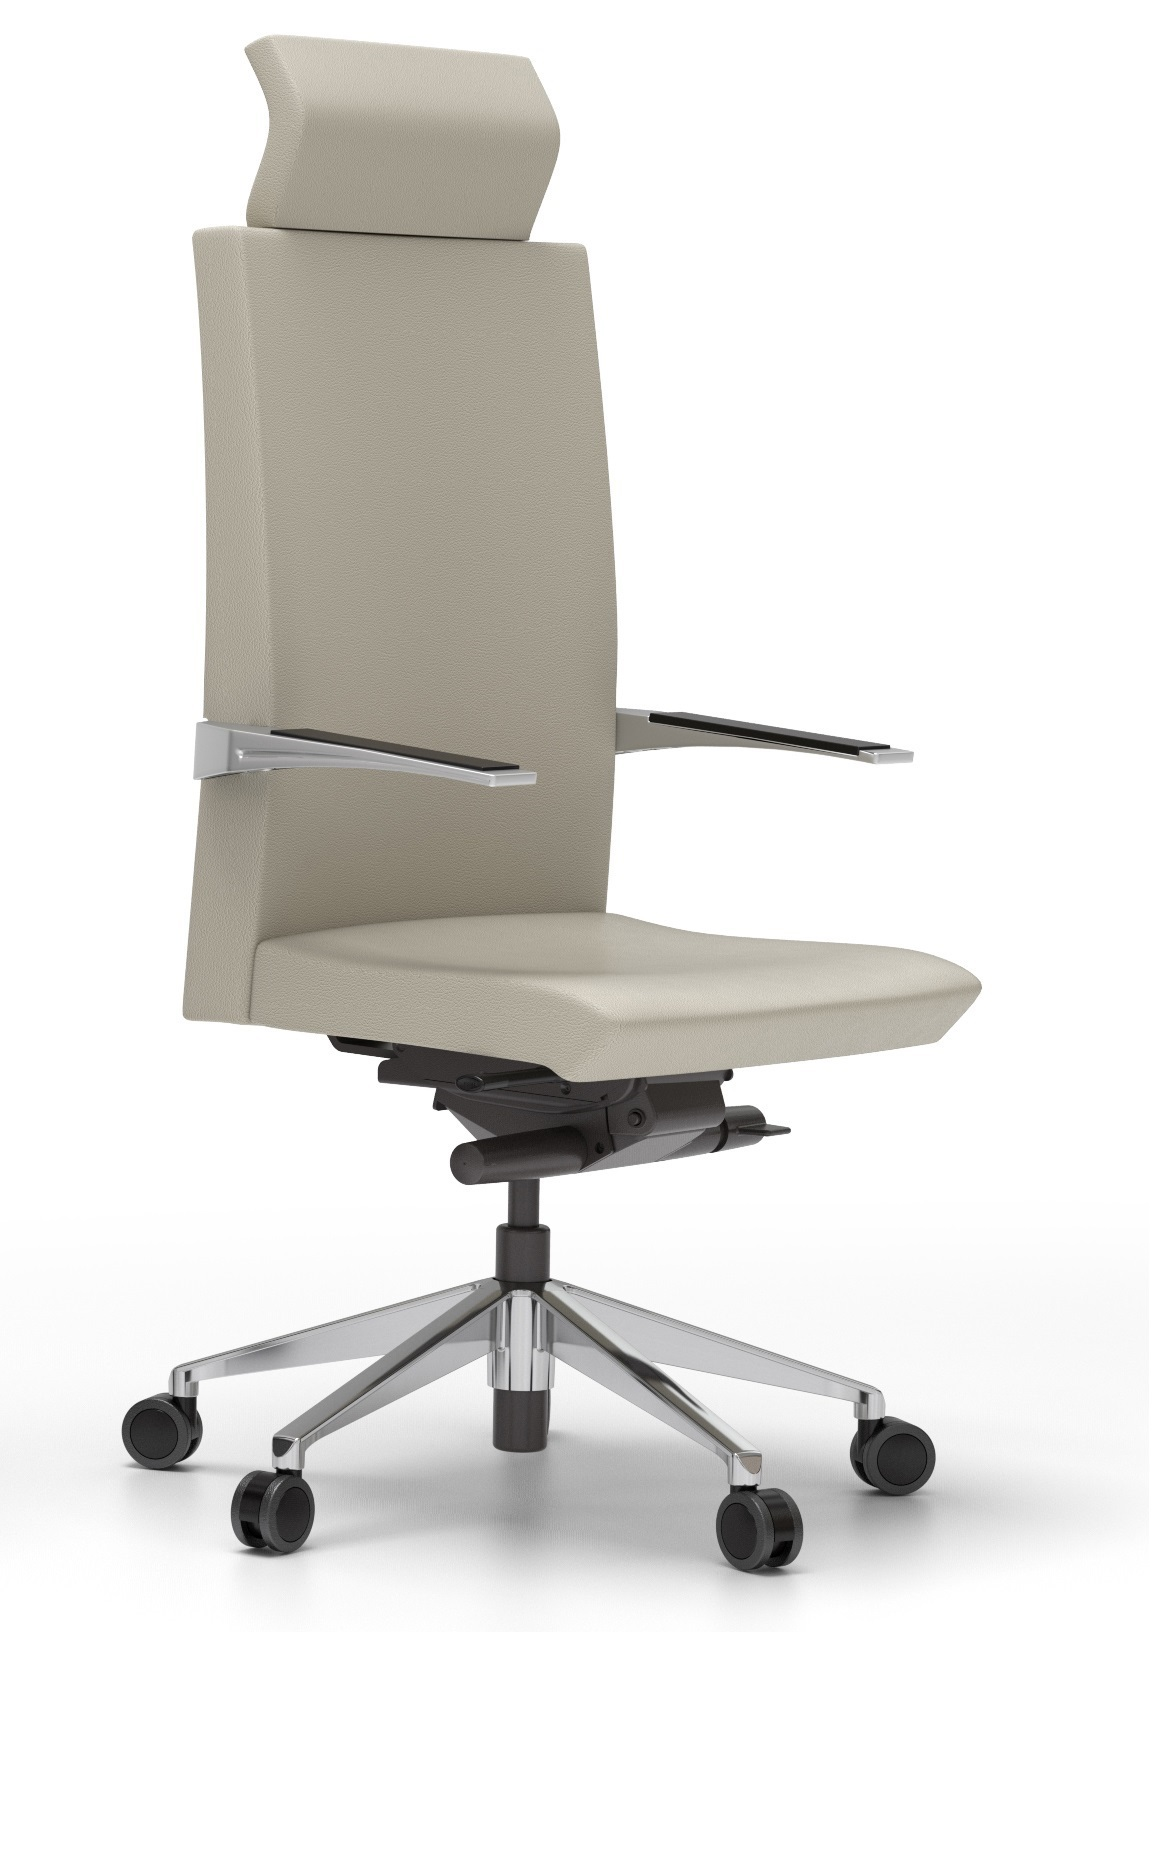 Office_chairs_4.jpg